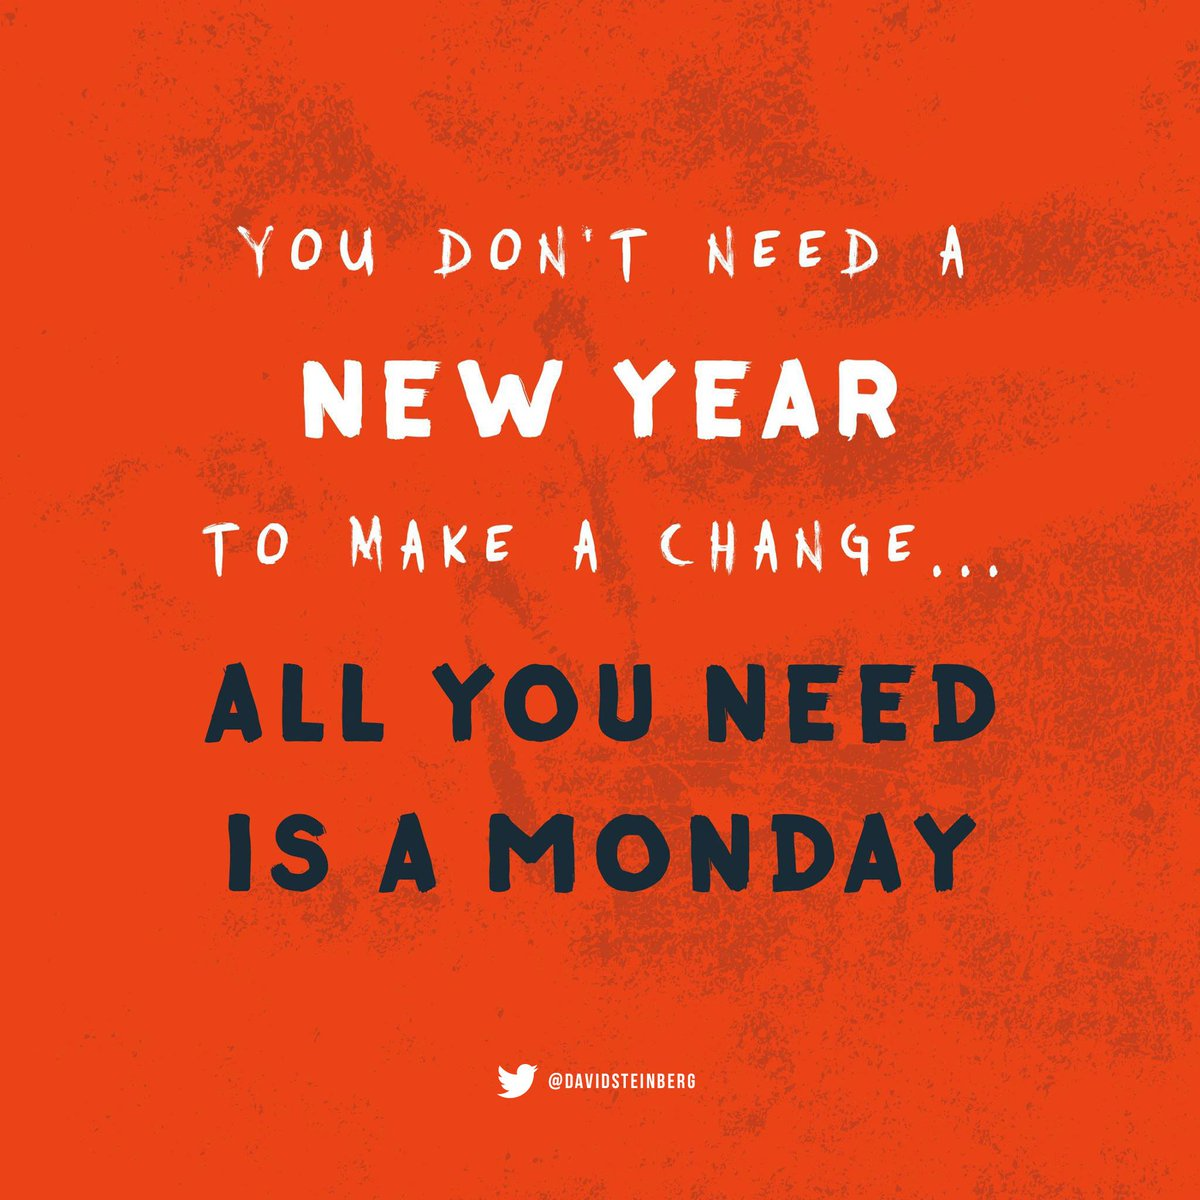 Here we come 2017! #mondaymotivation #HAPPYNEWYEAR #businessnetworking https://t.co/71teSrucHH